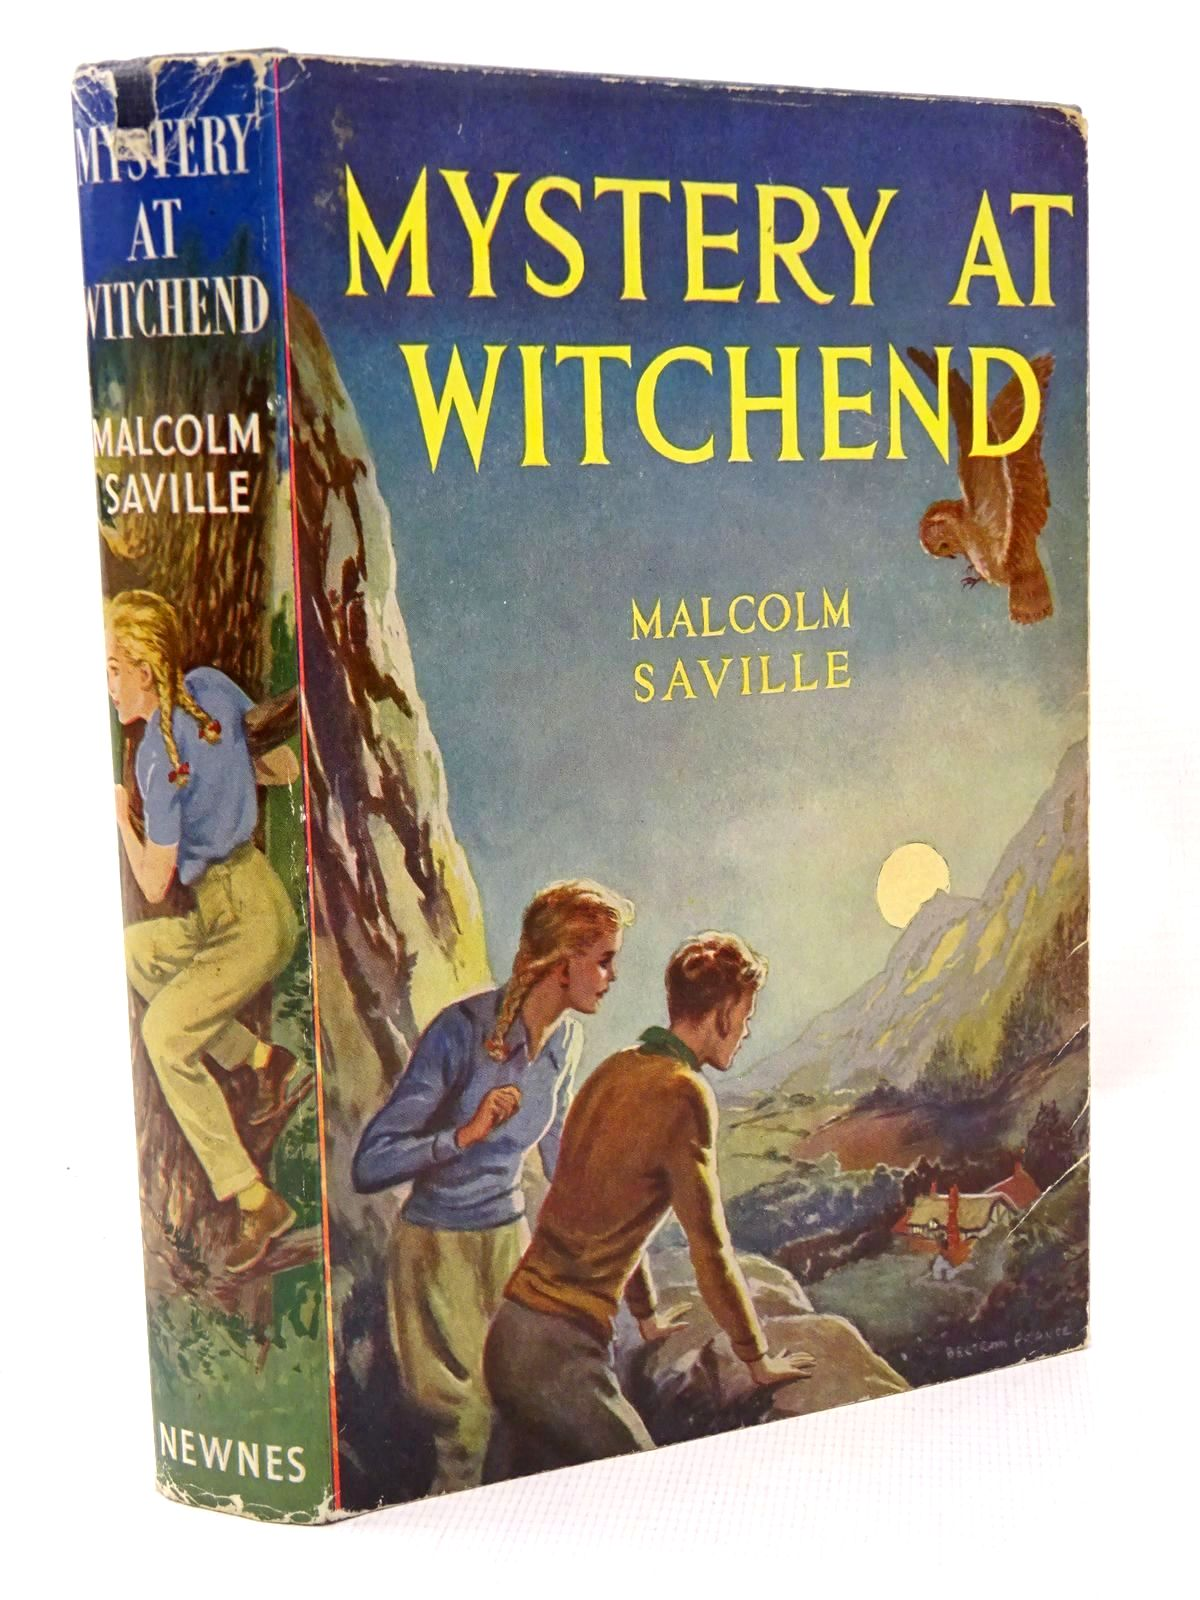 Photo of MYSTERY AT WITCHEND written by Saville, Malcolm illustrated by Prance, Bertram published by George Newnes Limited (STOCK CODE: 1317255)  for sale by Stella & Rose's Books